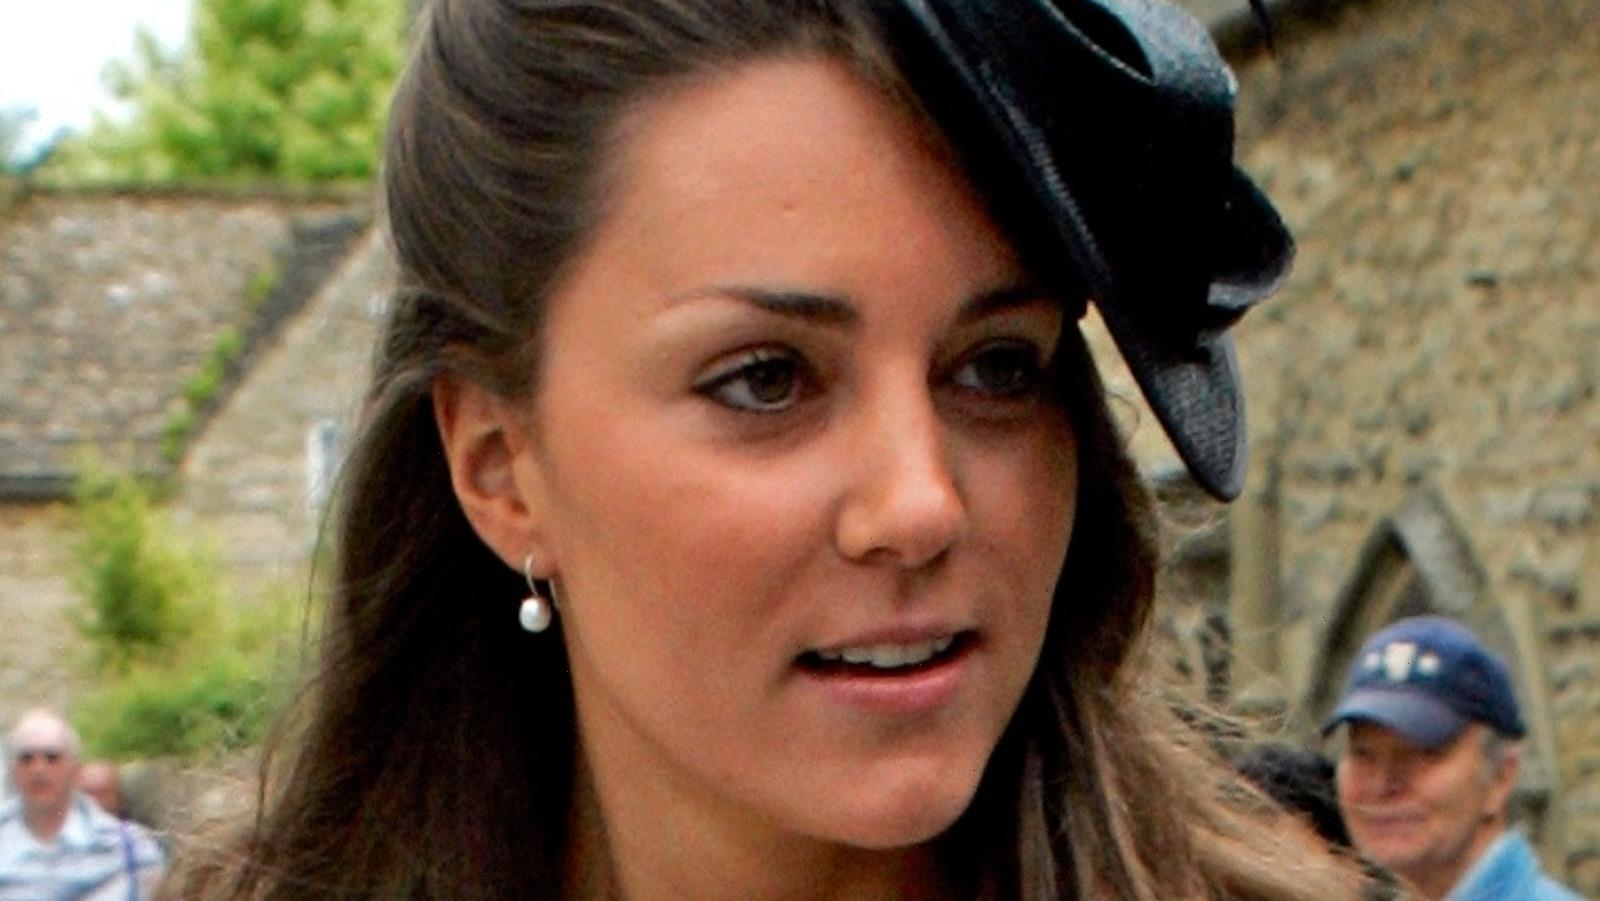 Kate Middleton's Transformation From Childhood To 39 Years Old